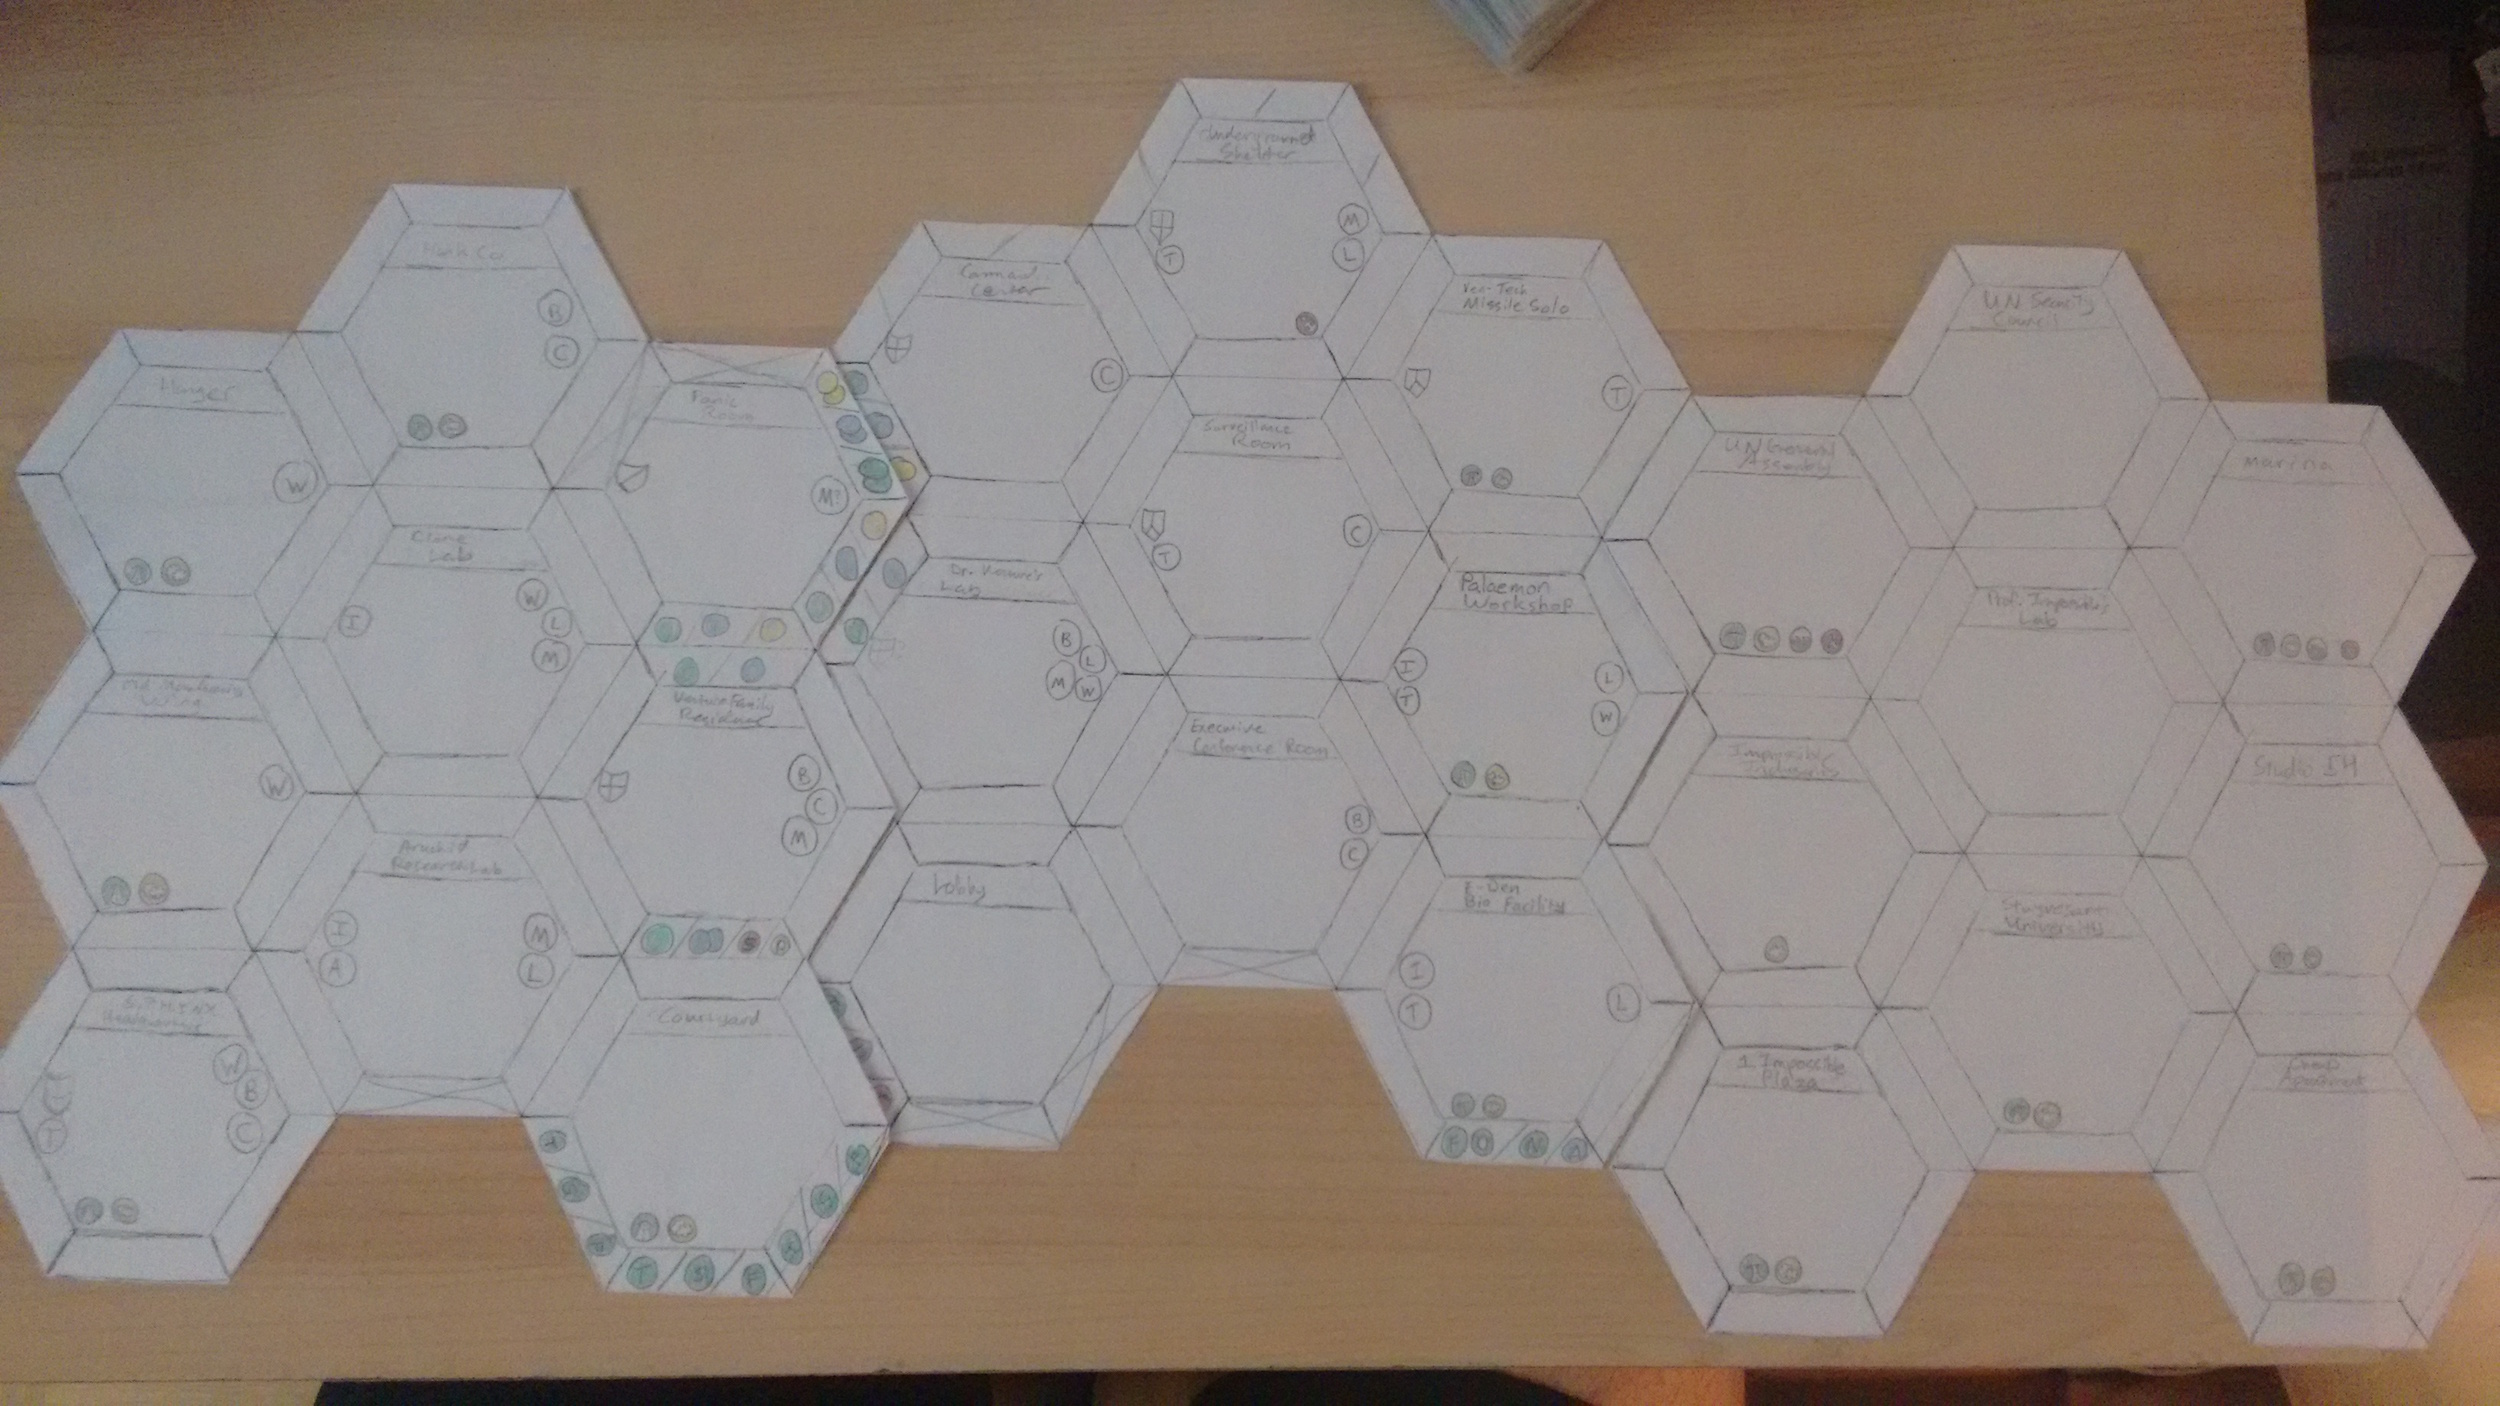 Drafting of newer, hex-based Location Tiles, with Entrance Requirements based on Skill Icons,that have become out-dated while I was working on them.(I also have a feeling I'll have to revamp the NYC Tile anyway as Season 6 airs!)